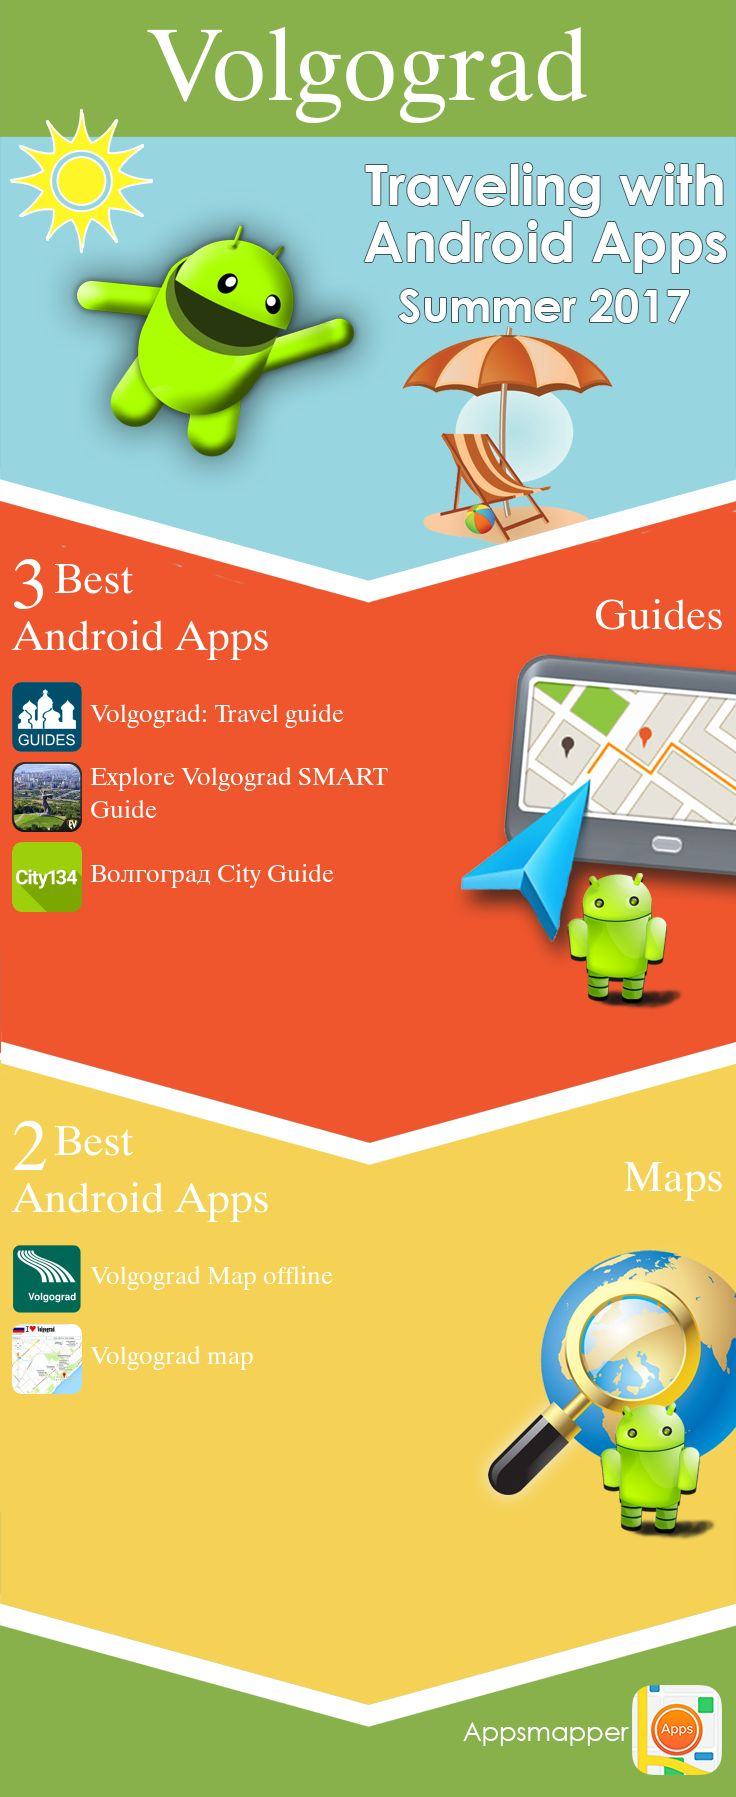 Volgograd Android apps: Travel Guides, Maps, Transportation, Biking, Museums, Parking, Sport and apps for Students.